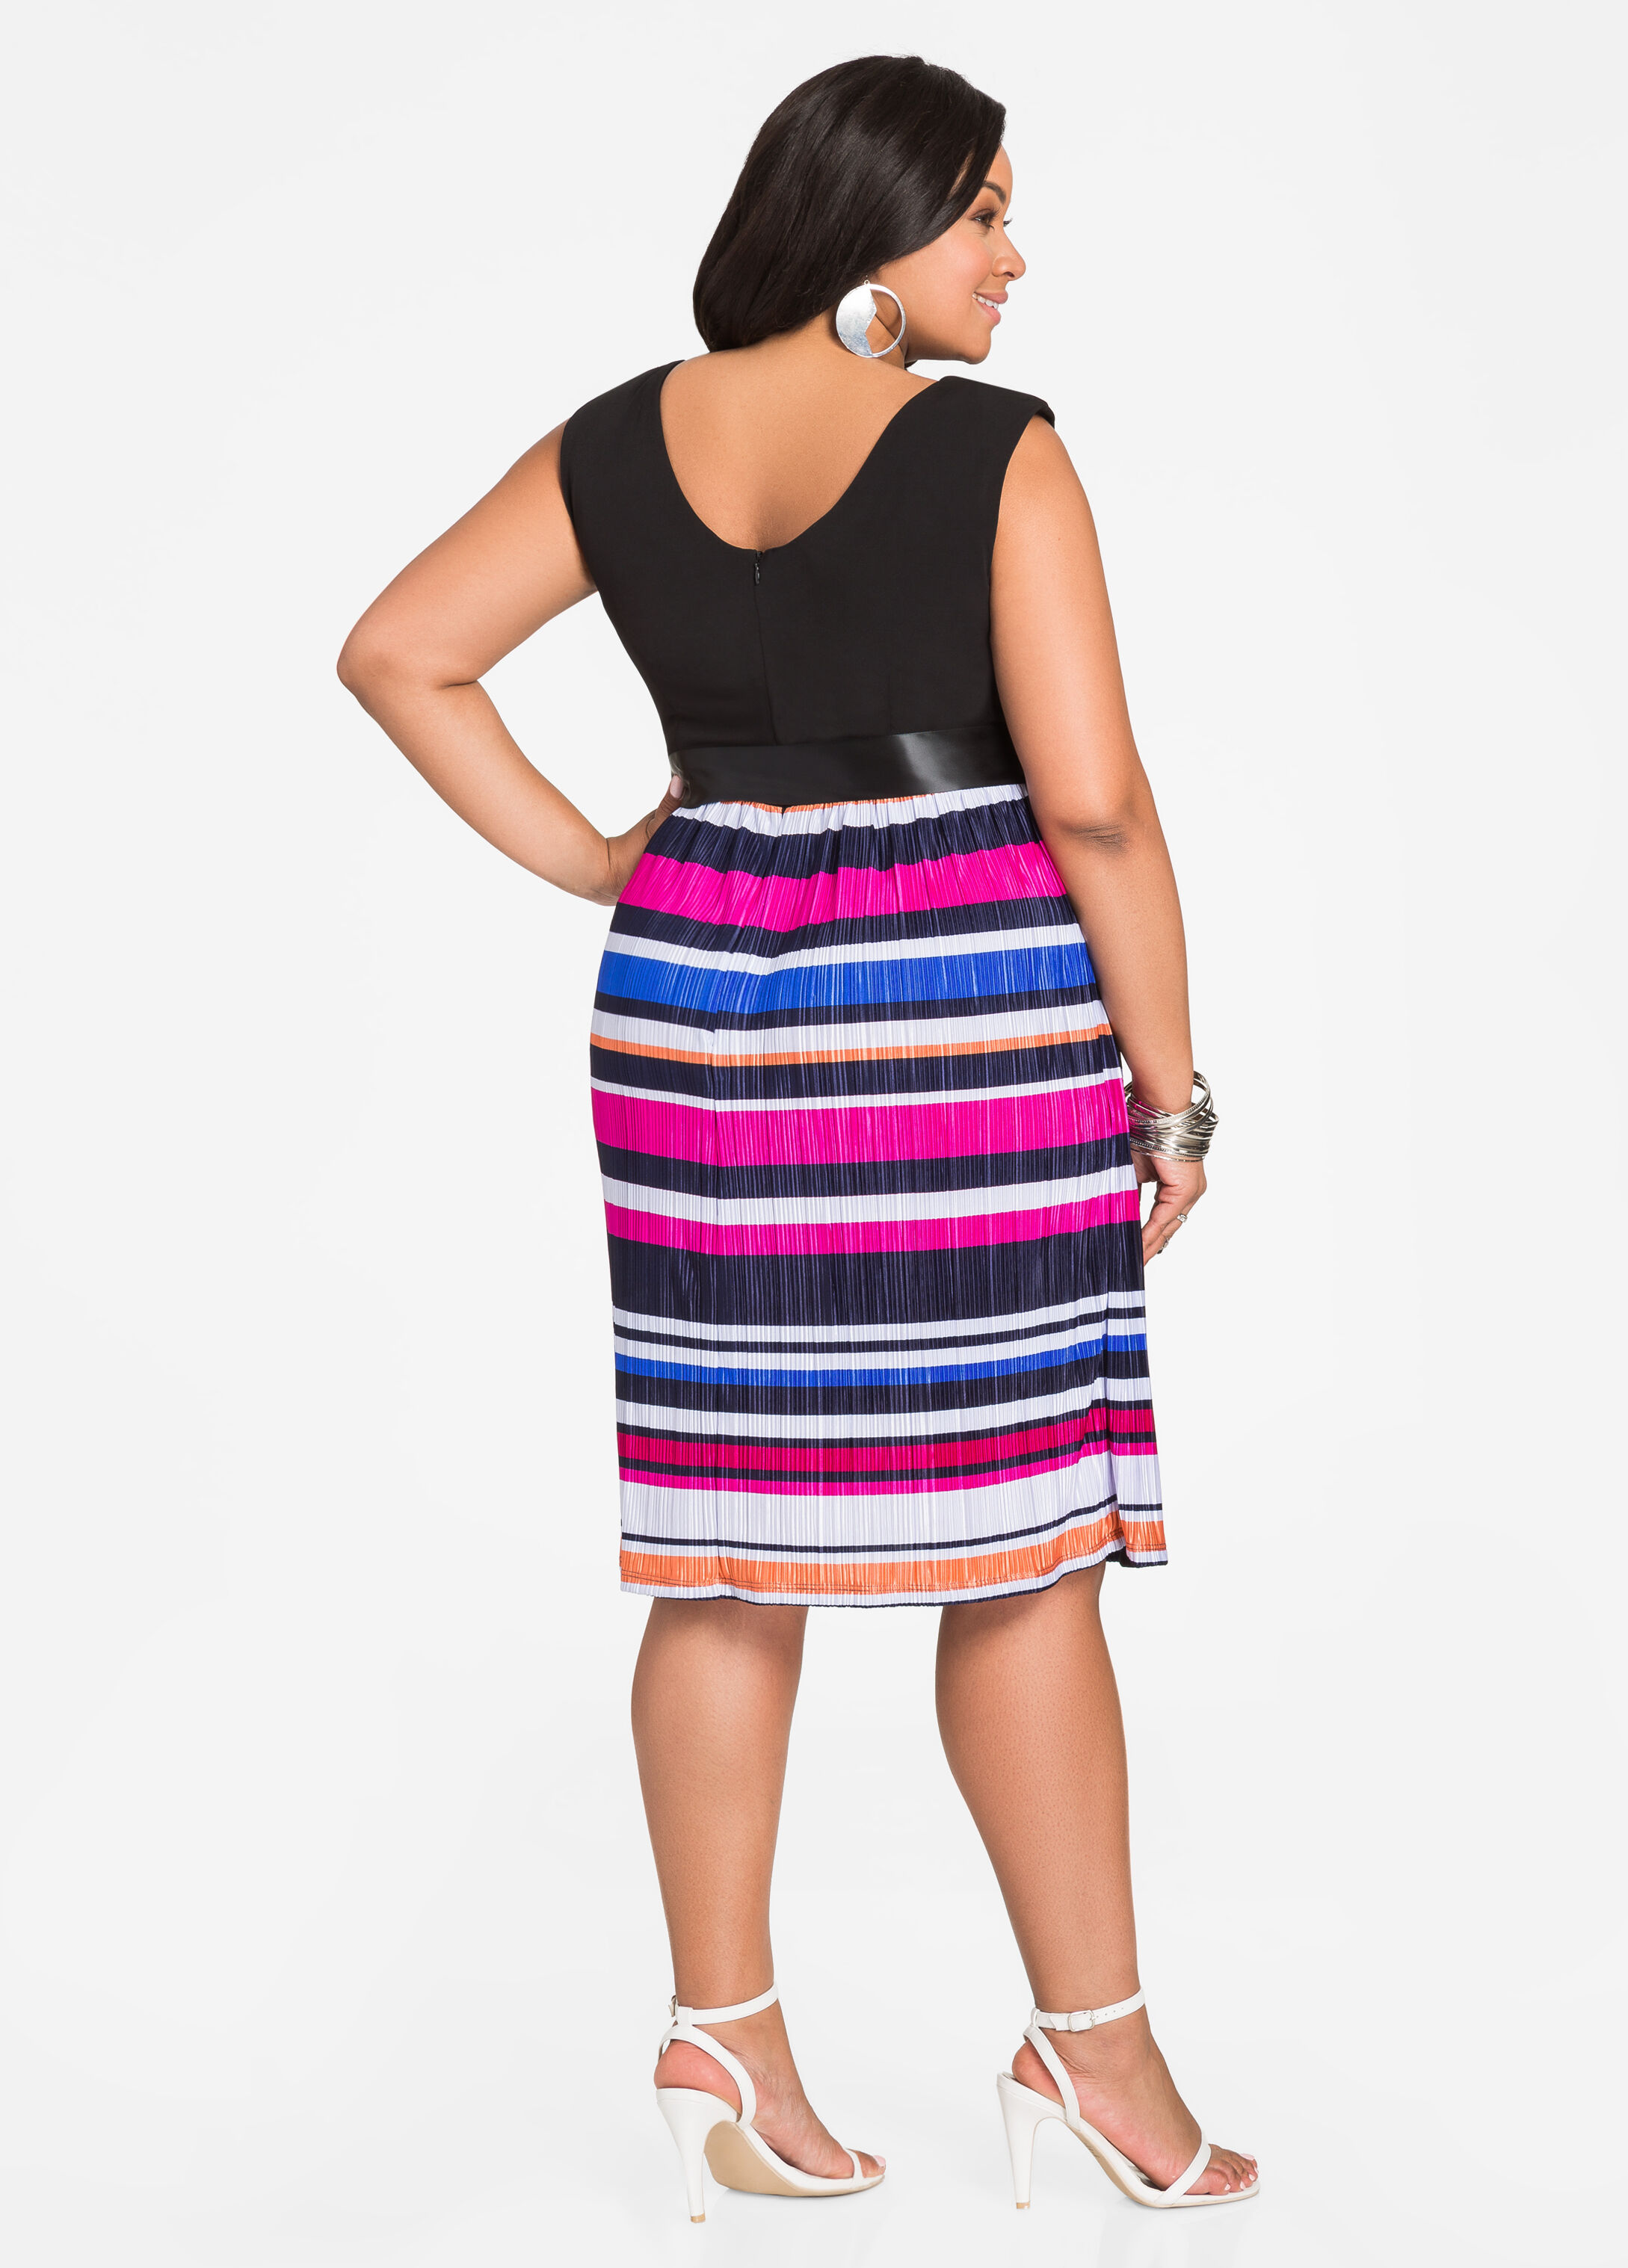 Stripe Skirt Skater Dress with Sash